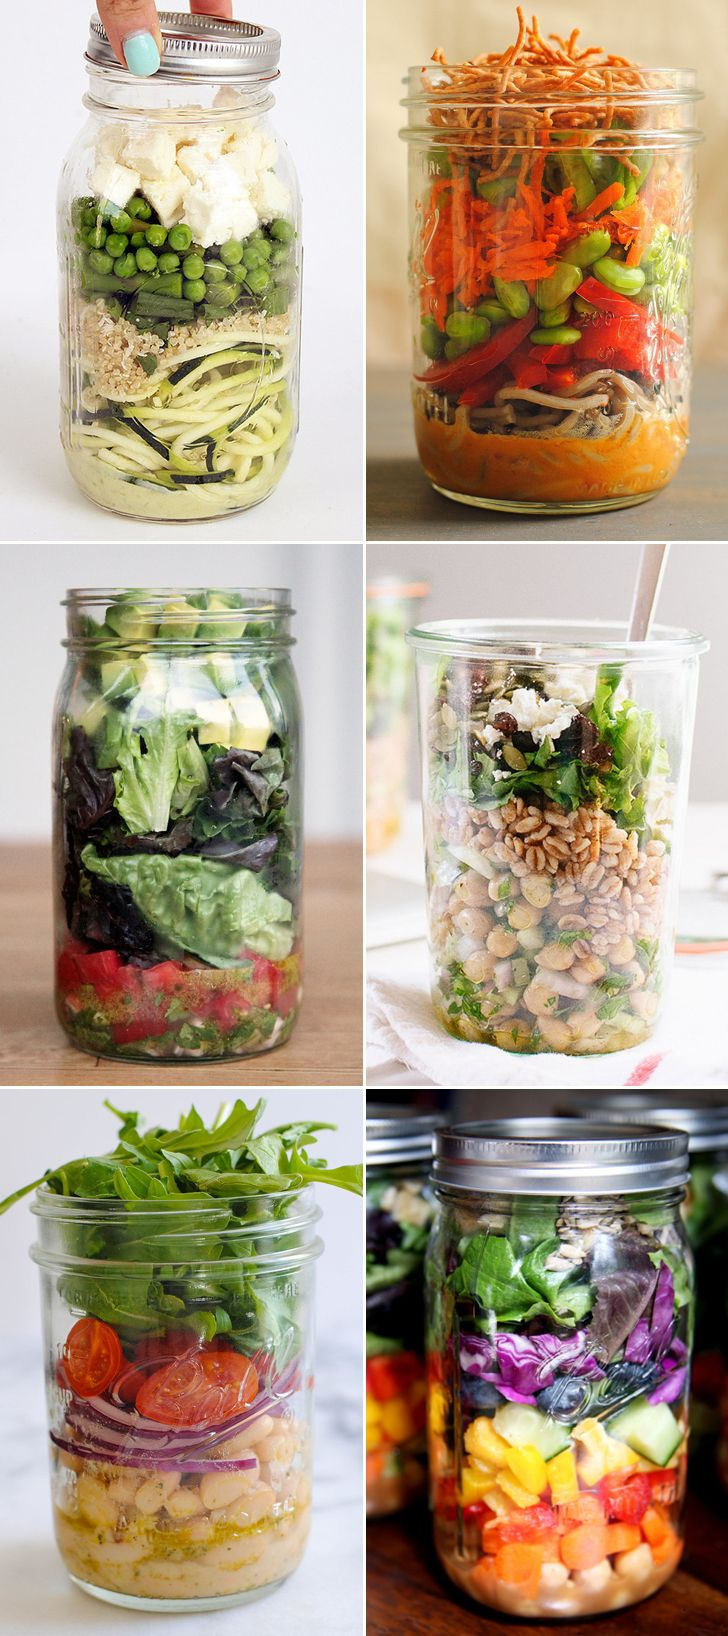 A crisp, crunchy salad makes the perfect lunch, but here's a secret: packing your meal in a mason jar actually makes it taste better. These 15 recipes will help you step up your lunches for good.